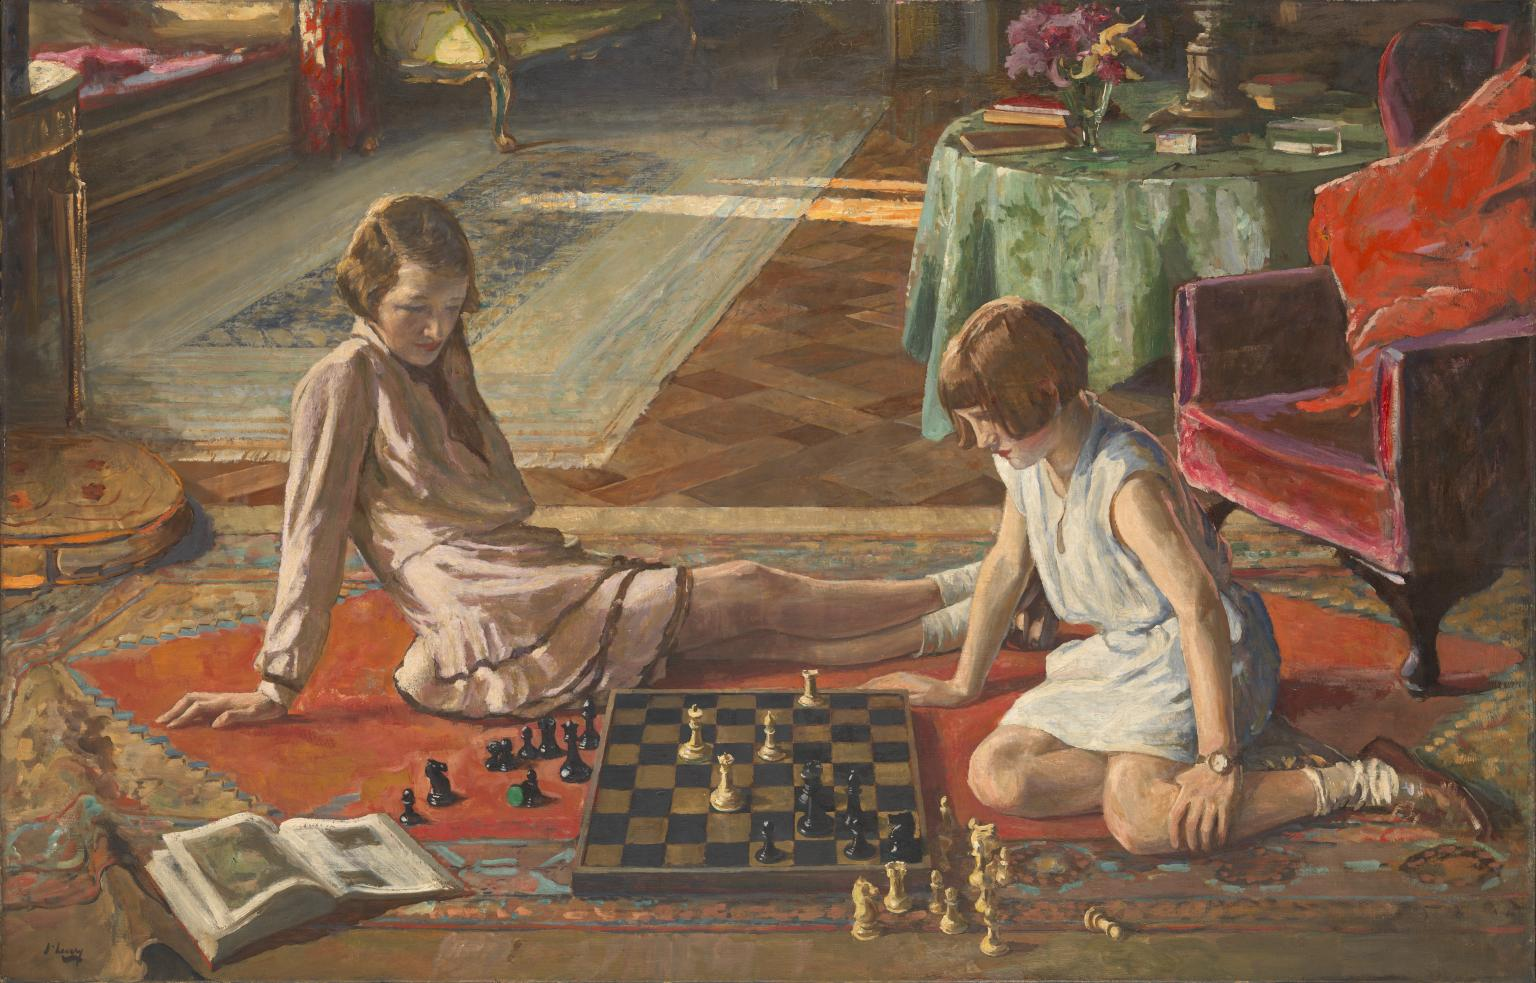 The Chess Players 1929 by Sir John Lavery 1856-1941